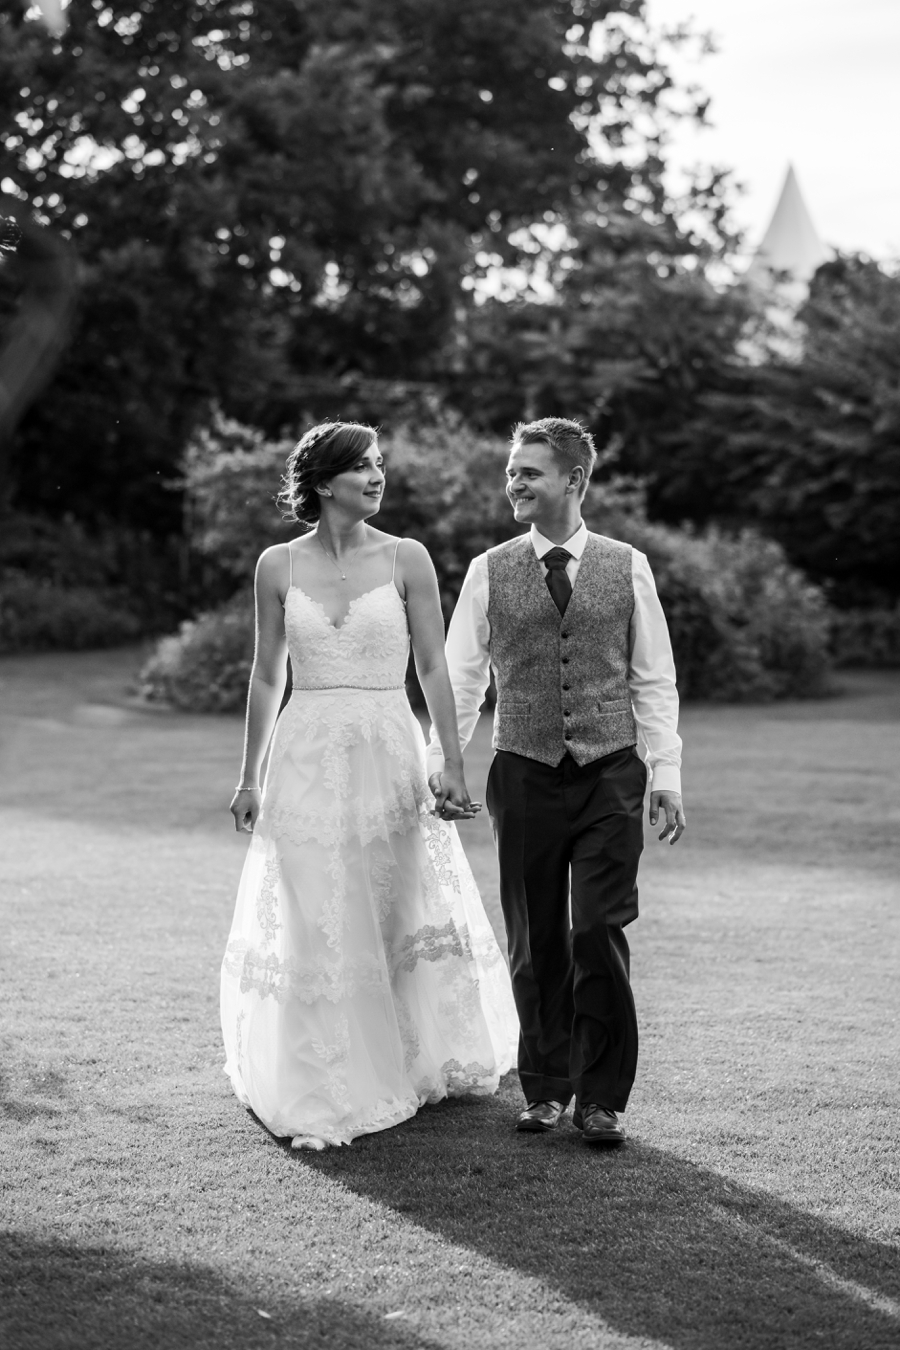 Parley Manor wedding photography by Rachel Elizabeth on English Wedding (38)